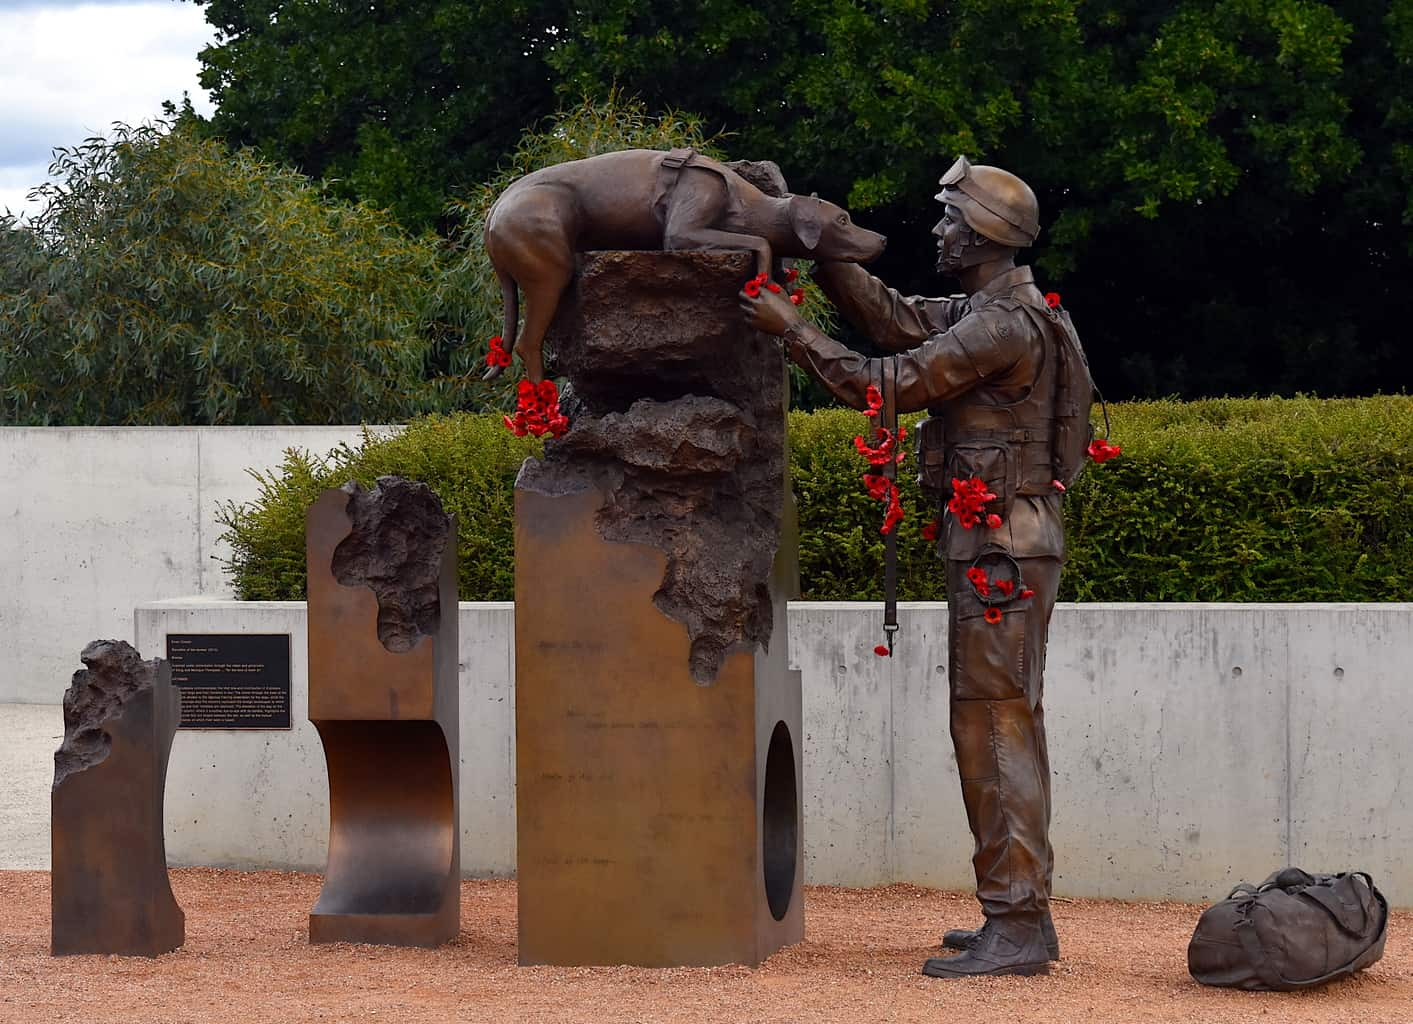 A sculpture at the Canberra Australian War Memorial that commemorates the contribution that Explosive Detection Dogs made to the war effort.